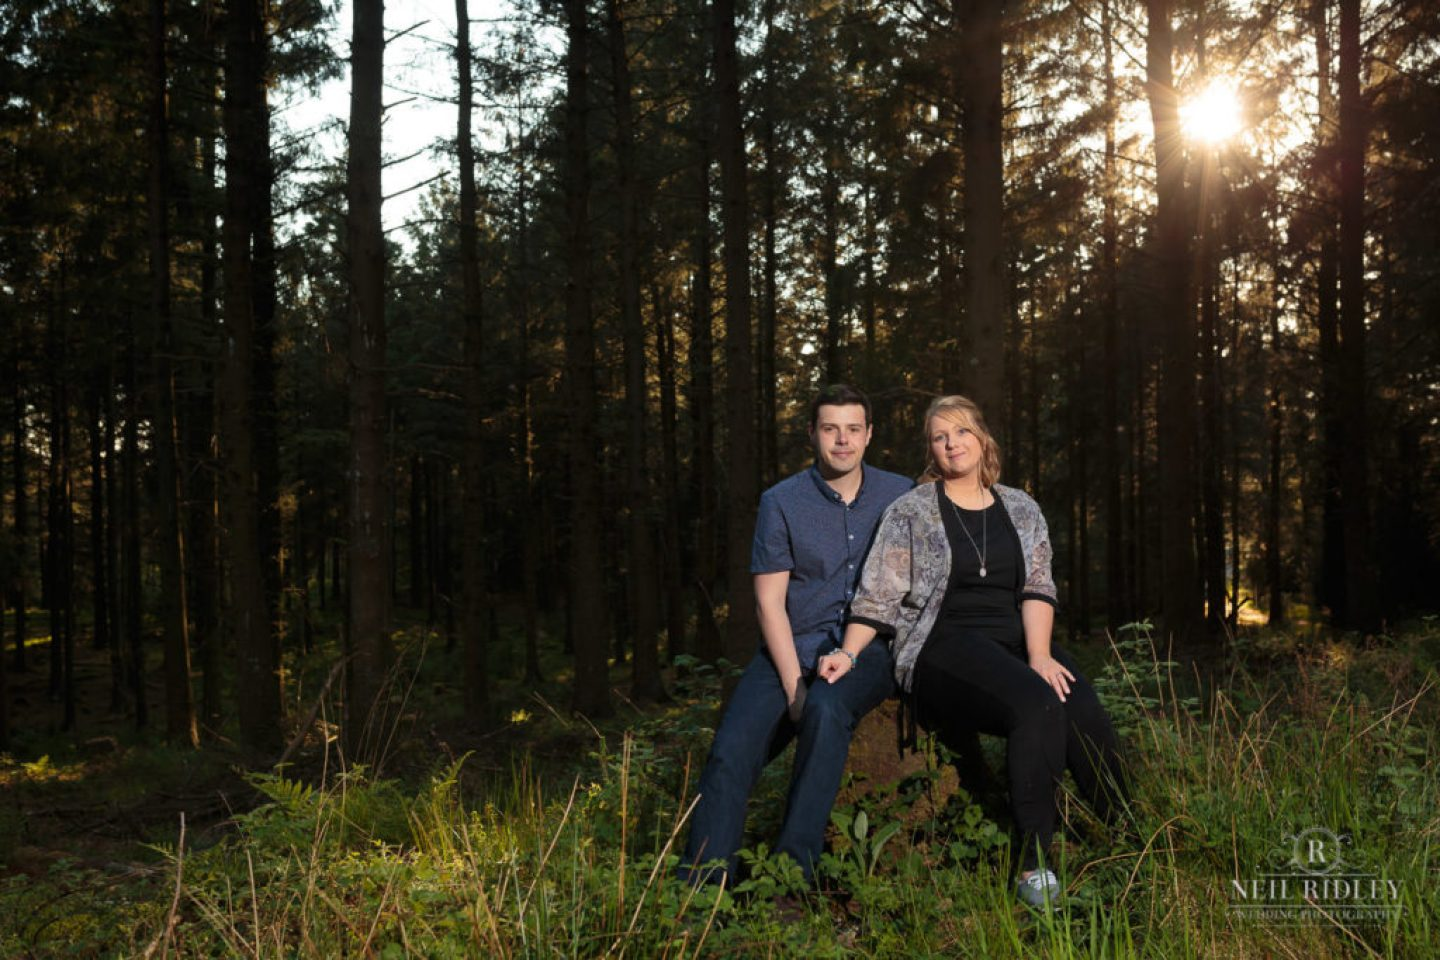 Lancashire Pre Wedding Shoot at Beacon Fell, Young couple sat on a tree stump in a forest